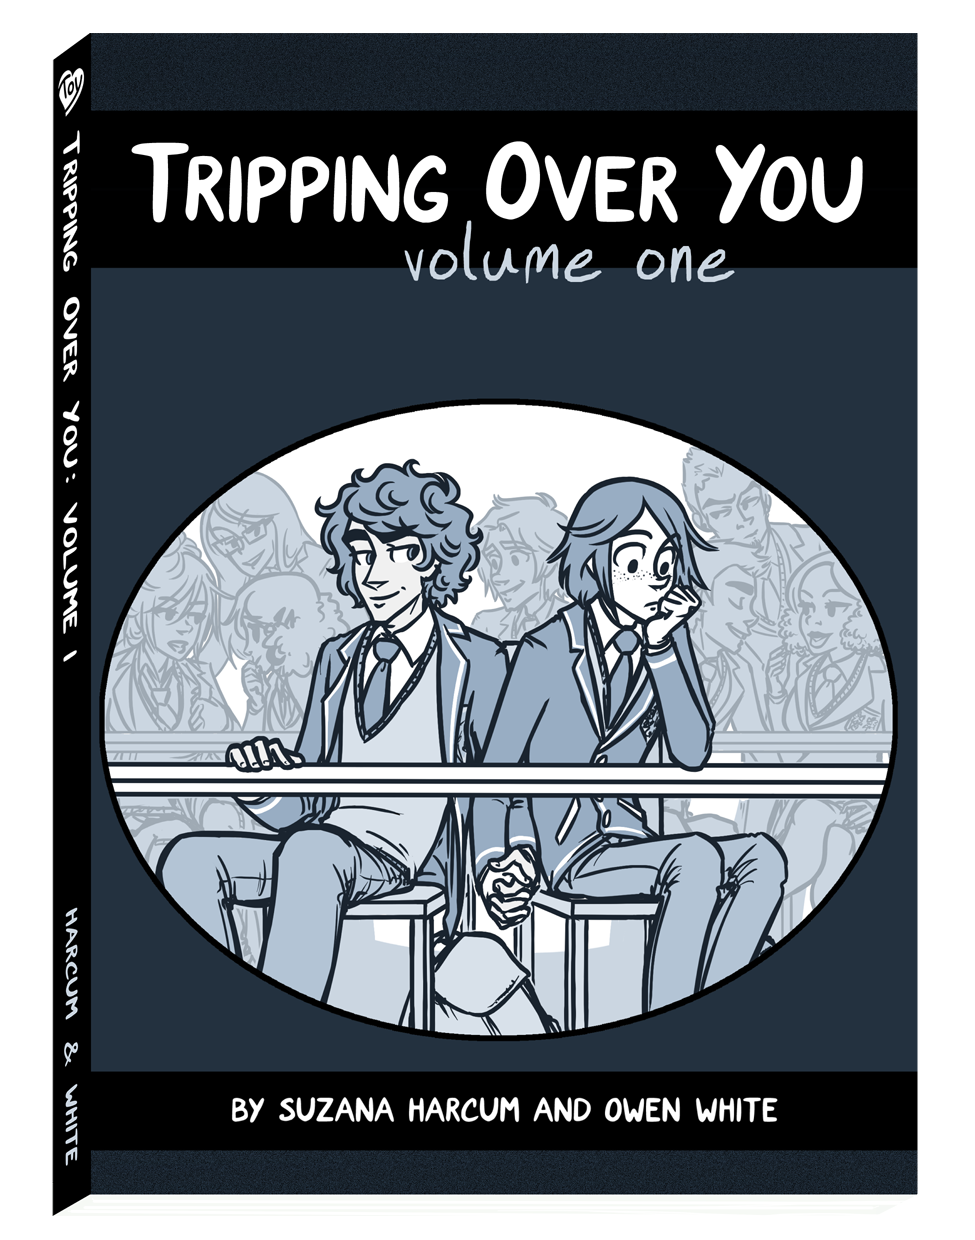 Tripping Over You - Vol. 1 from Tripping Over You - Webcomic Merchandise